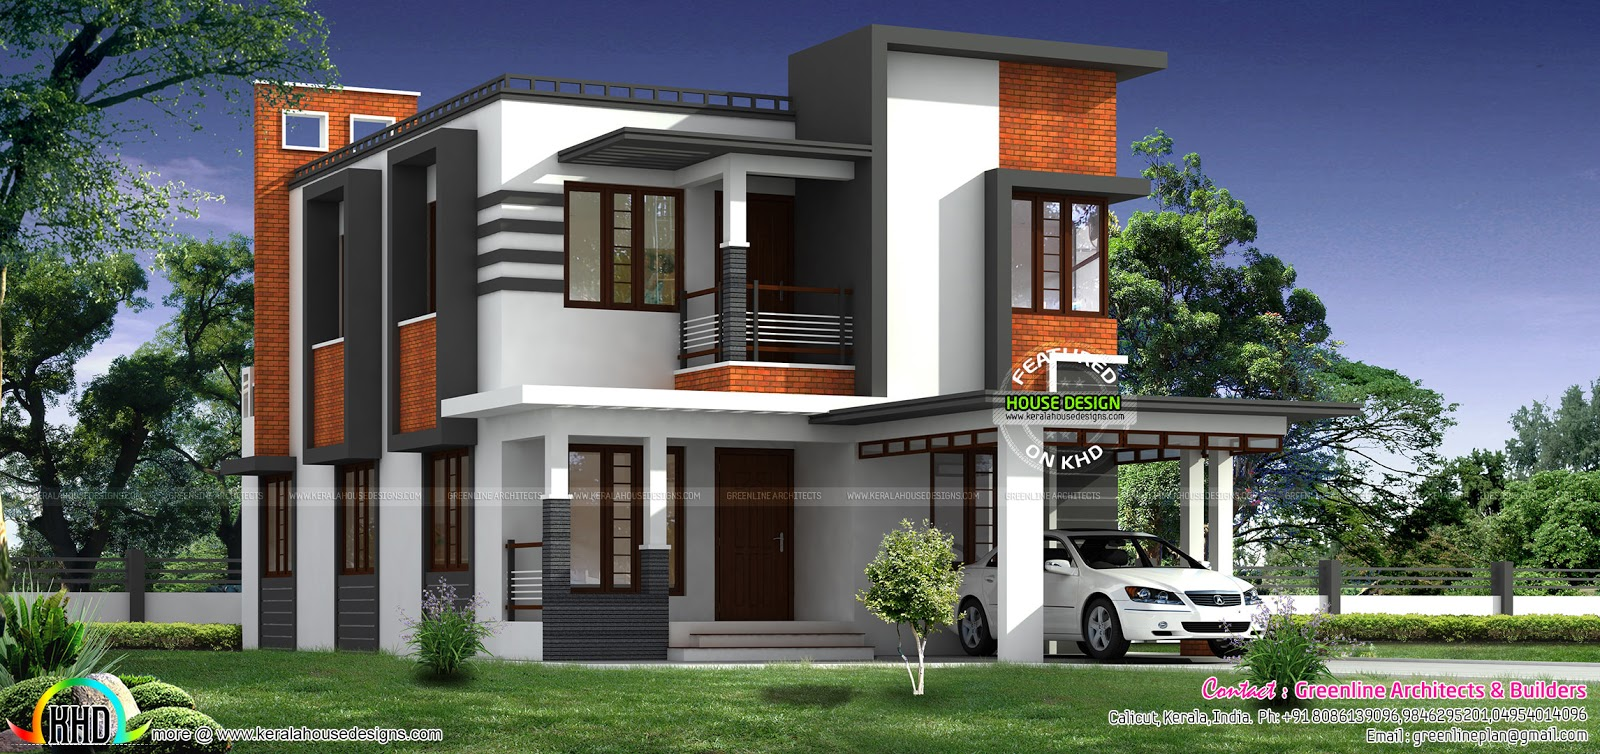 New Design House Image Of 1800 Sq Ft Nice Modern House Kerala Home Design And